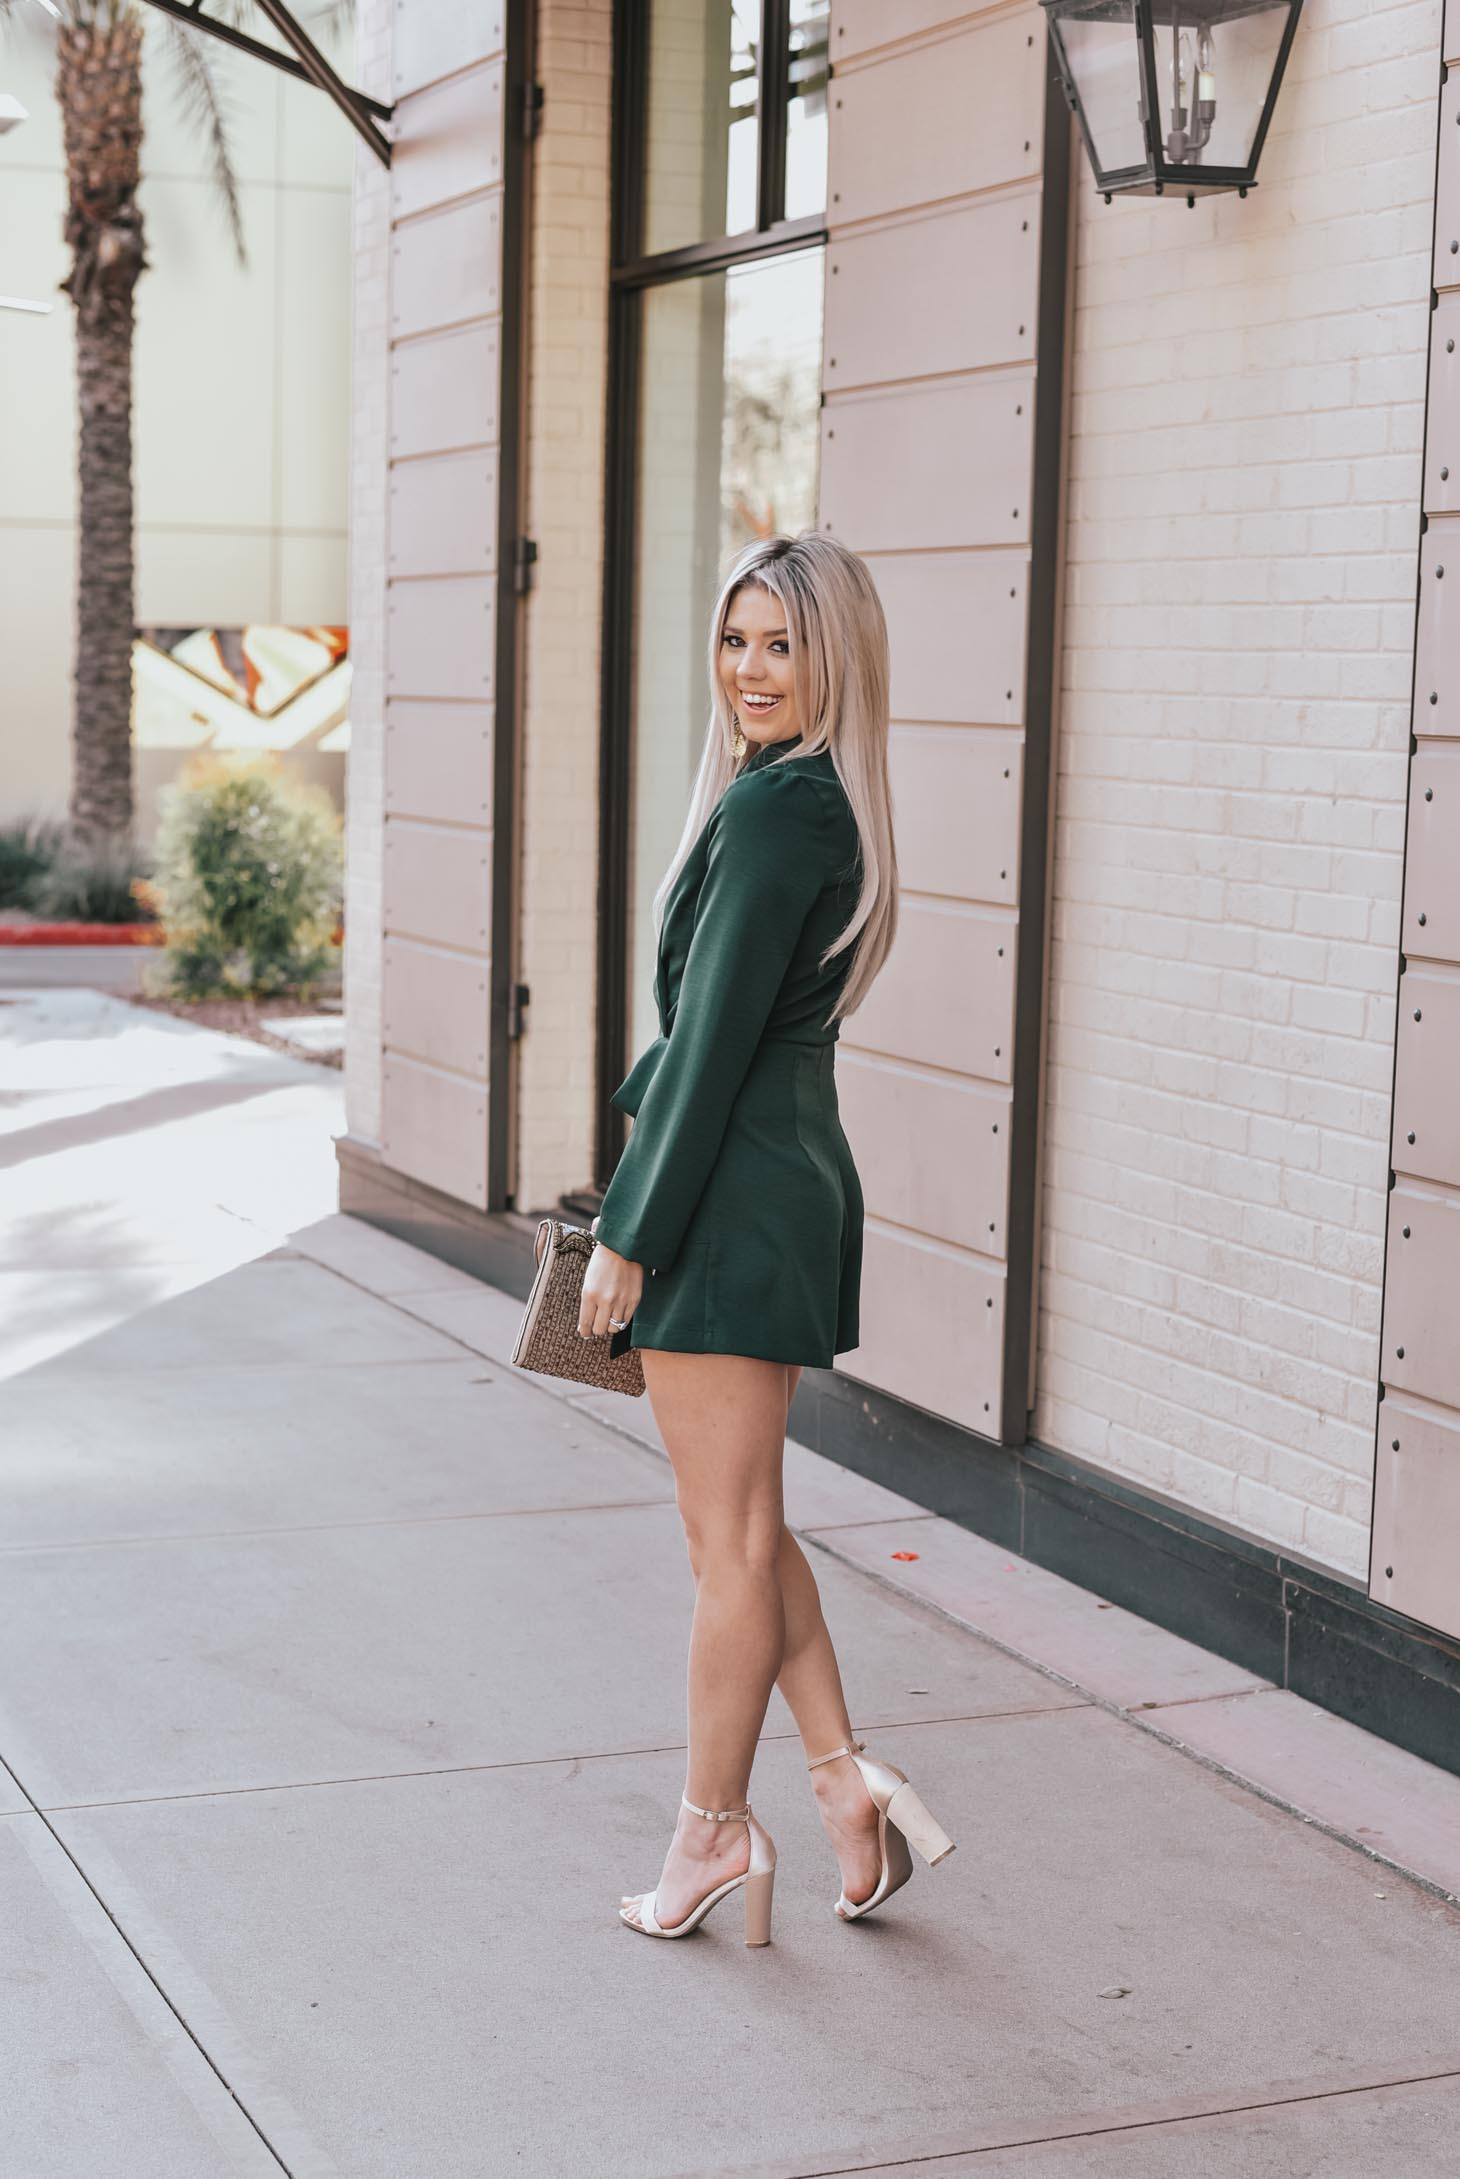 The Blazer Romper graphic